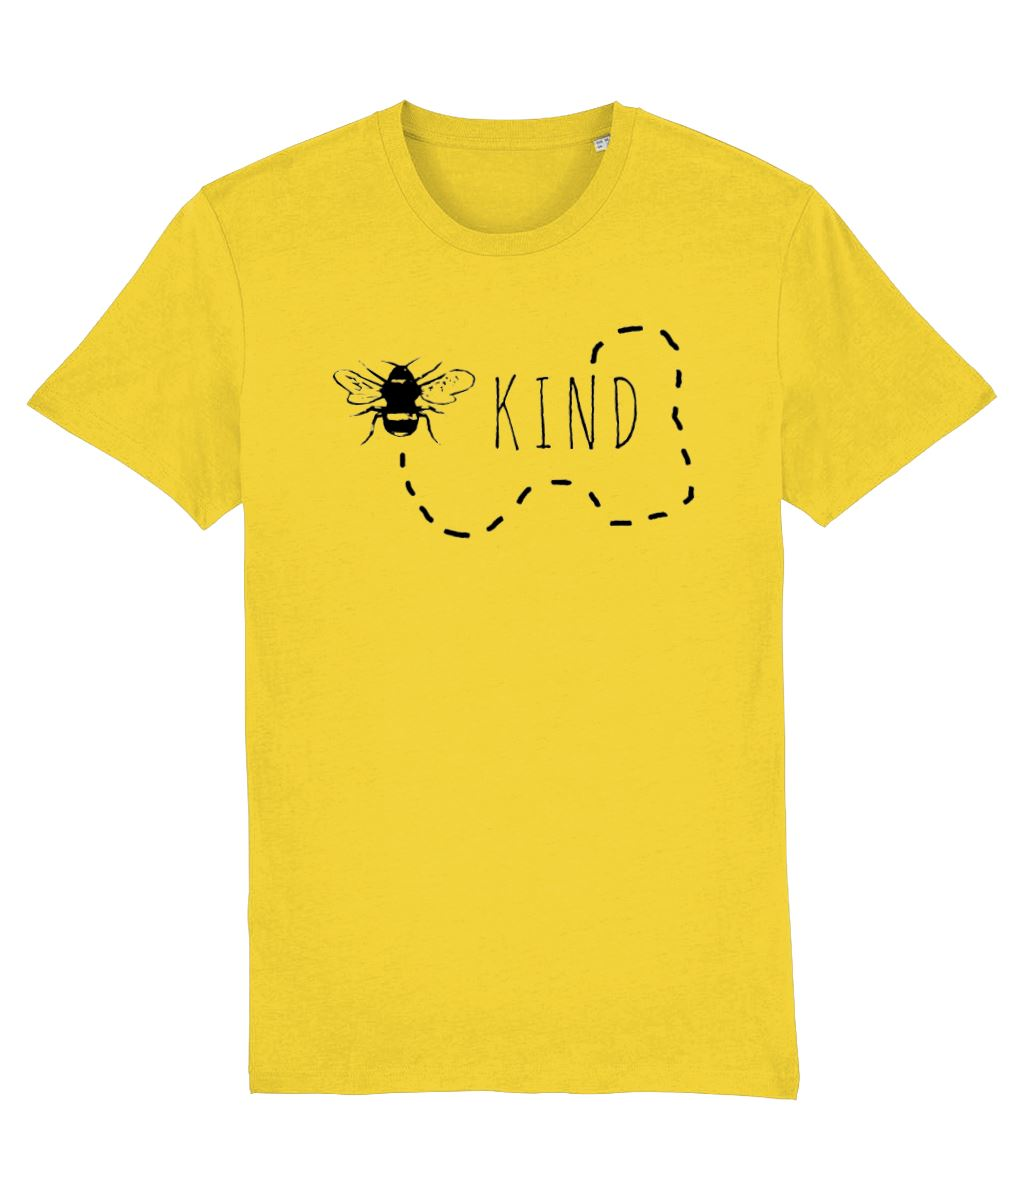 """Bee Kind"" Vegan T-Shirt - 100% Organic Cotton (Unisex) Clothing Vegan Original Golden Yellow X-Small"